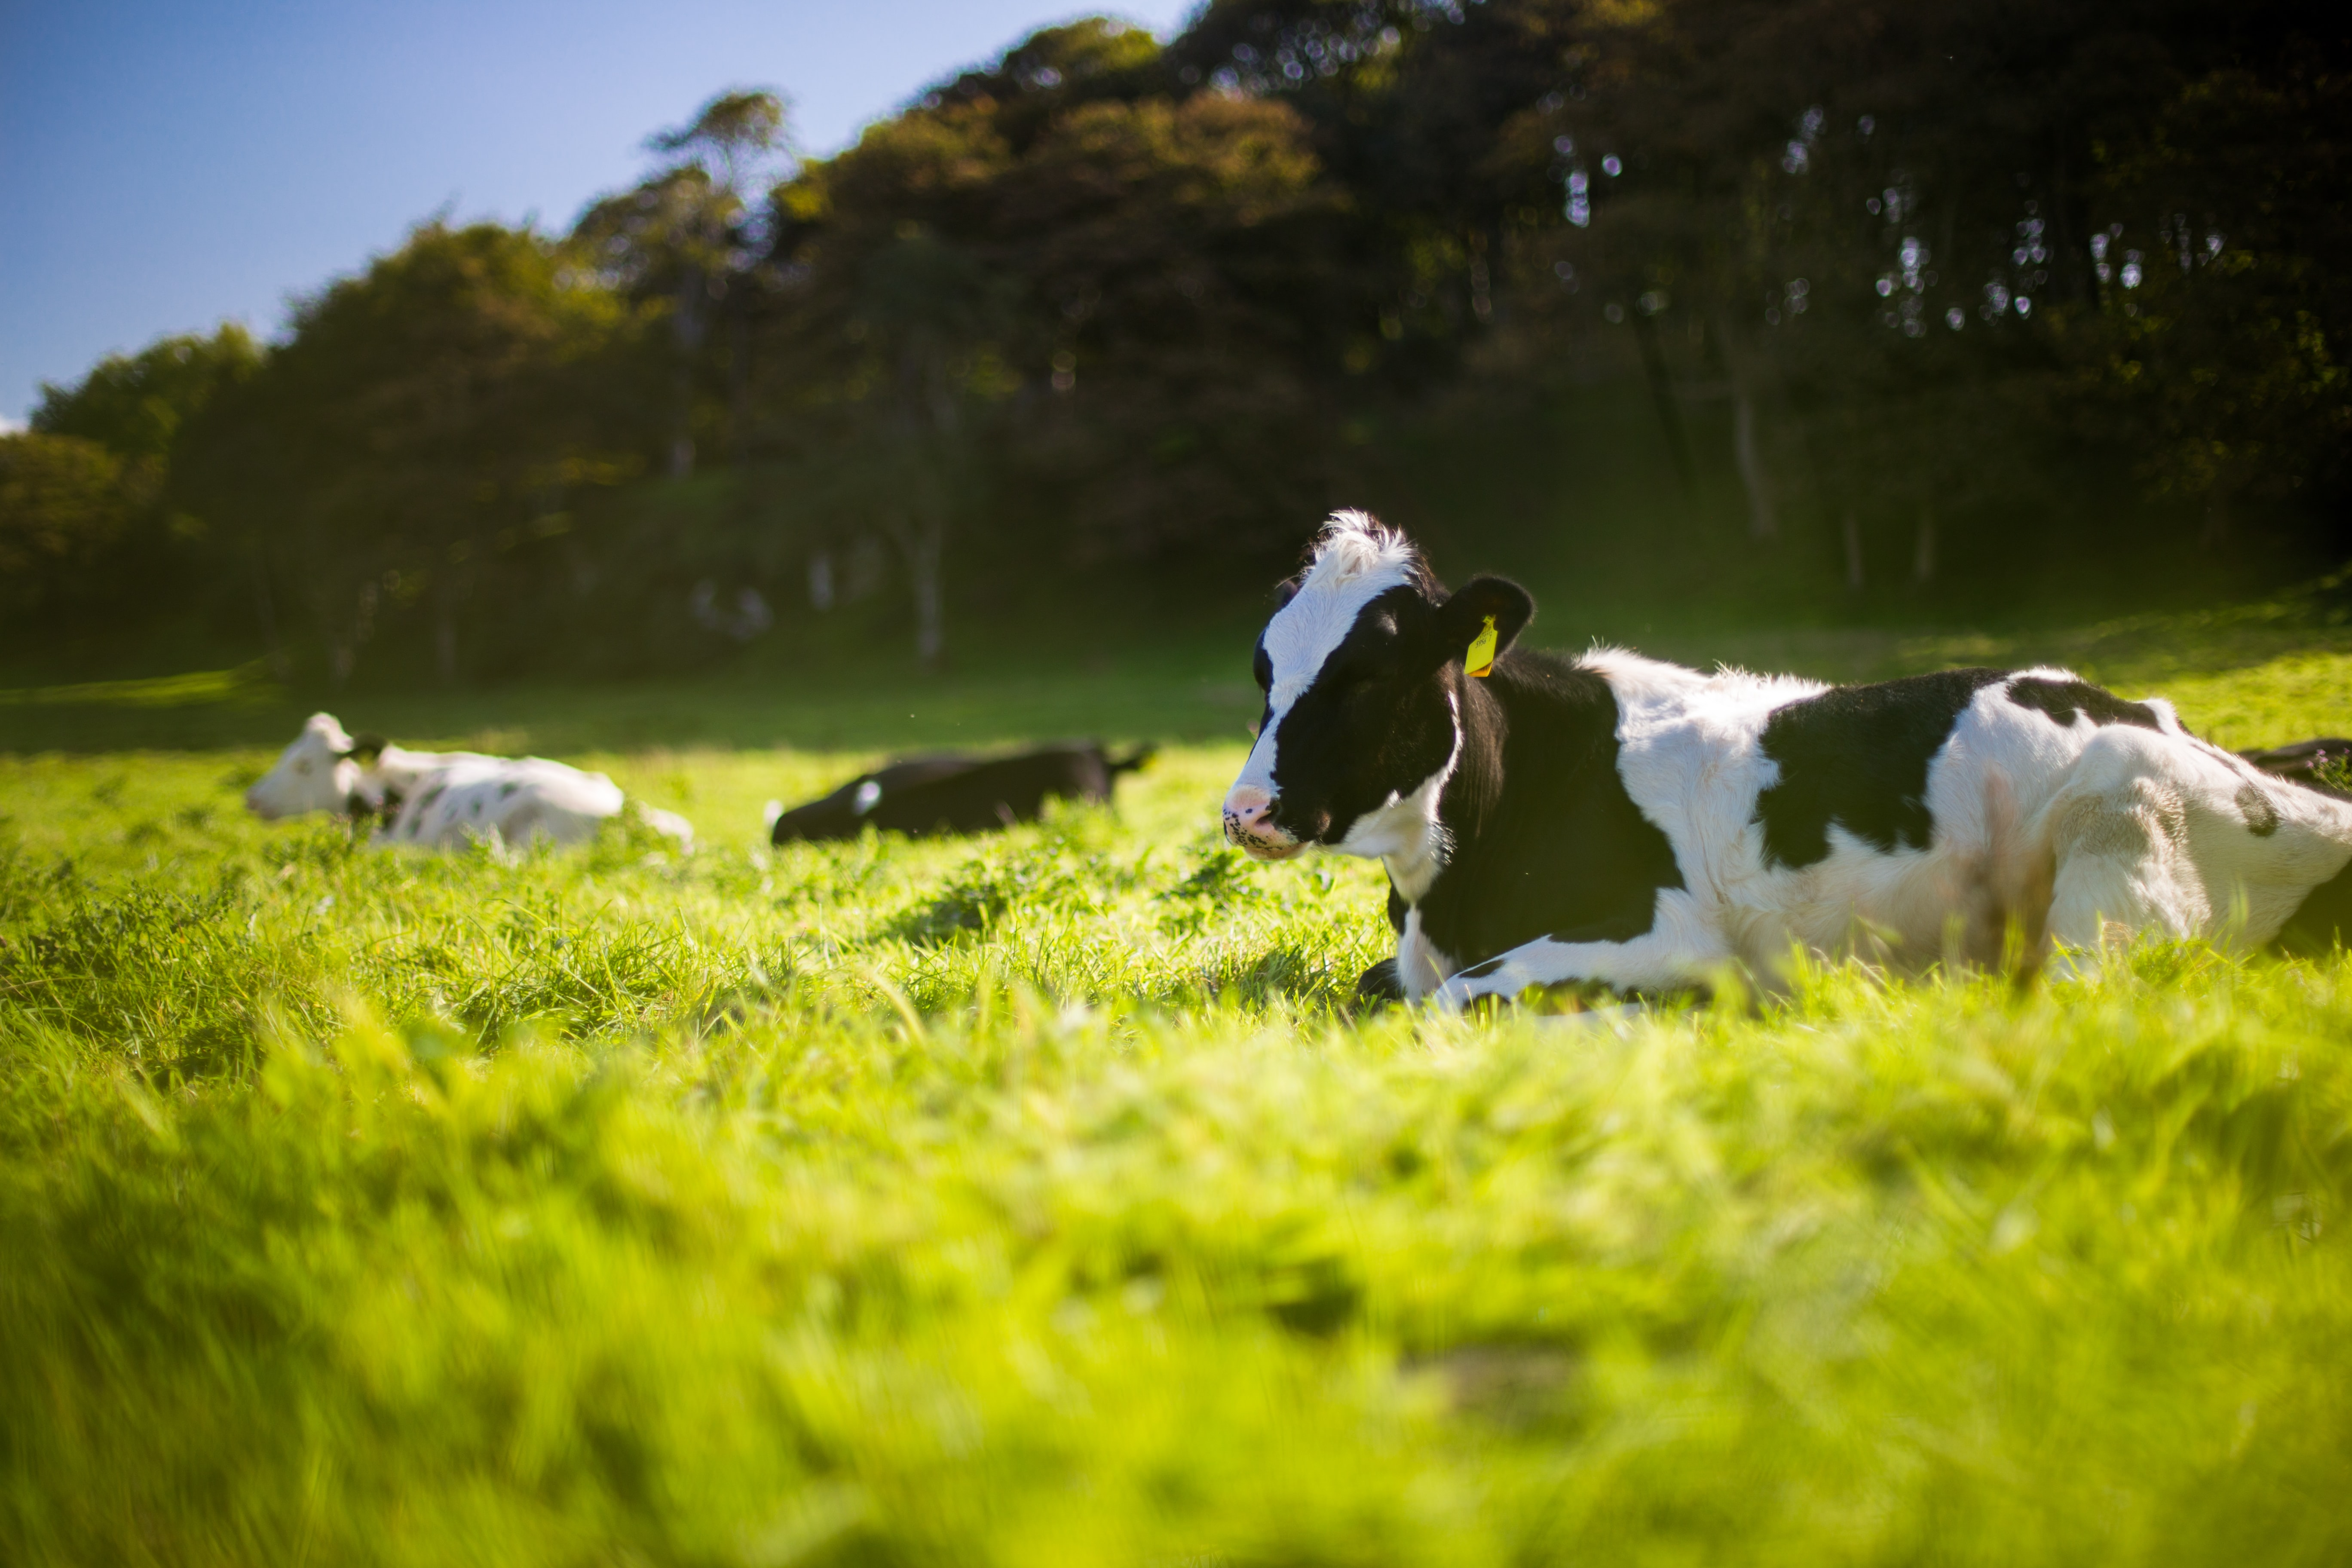 20 Best Free Cow Pictures Stock Photos On Unsplash